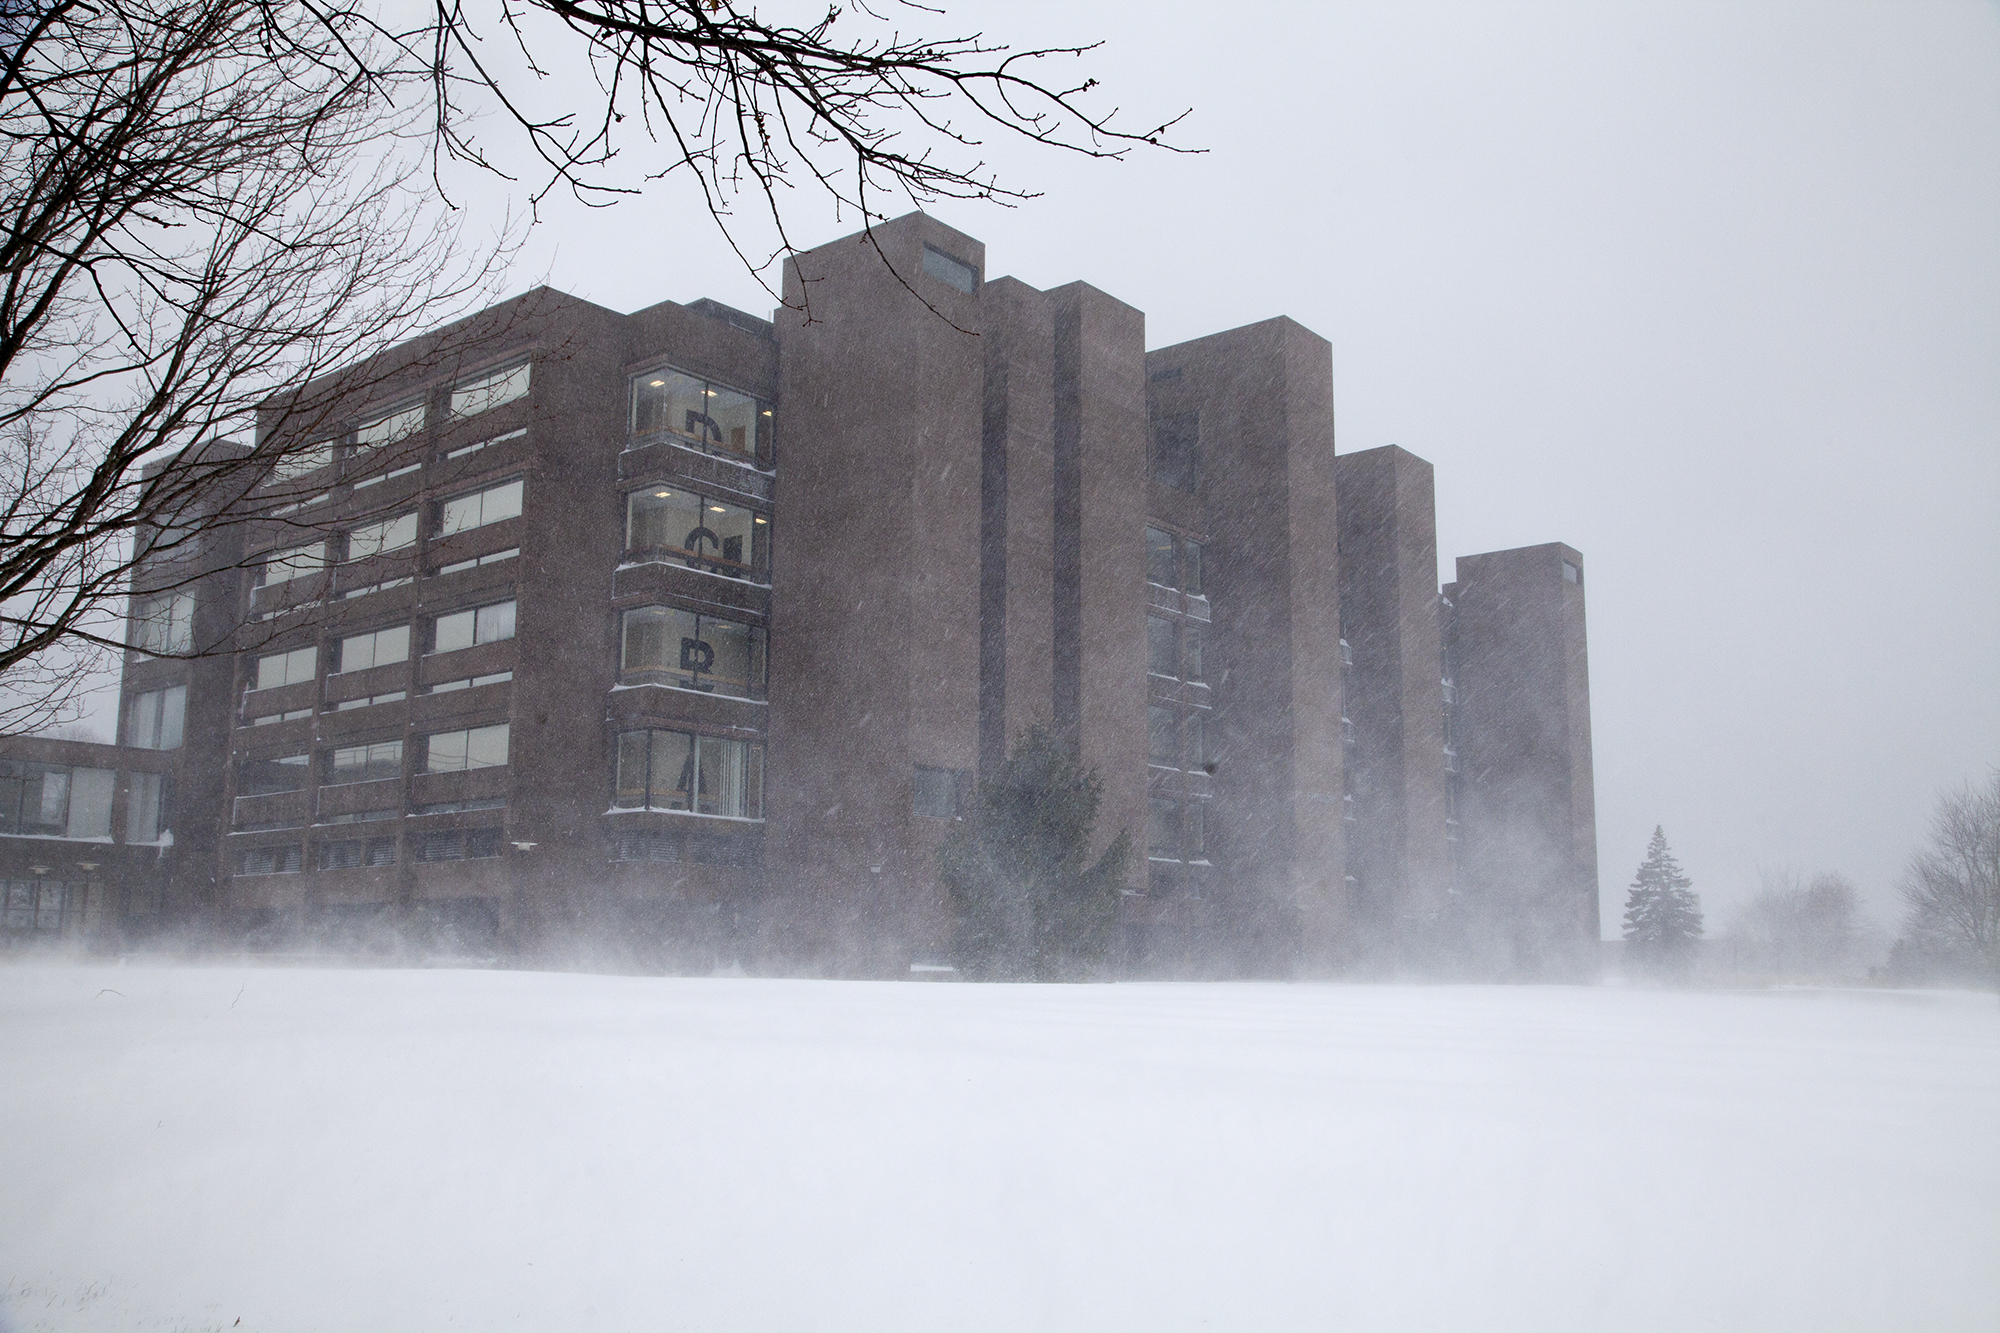 The Physics building as seen from the Campus Recreation Center at Stony Brook University during Winter Storm Jonas on Saturday, Jan. 23. CHRISTOPHER CAMERON/THE STATESMAN